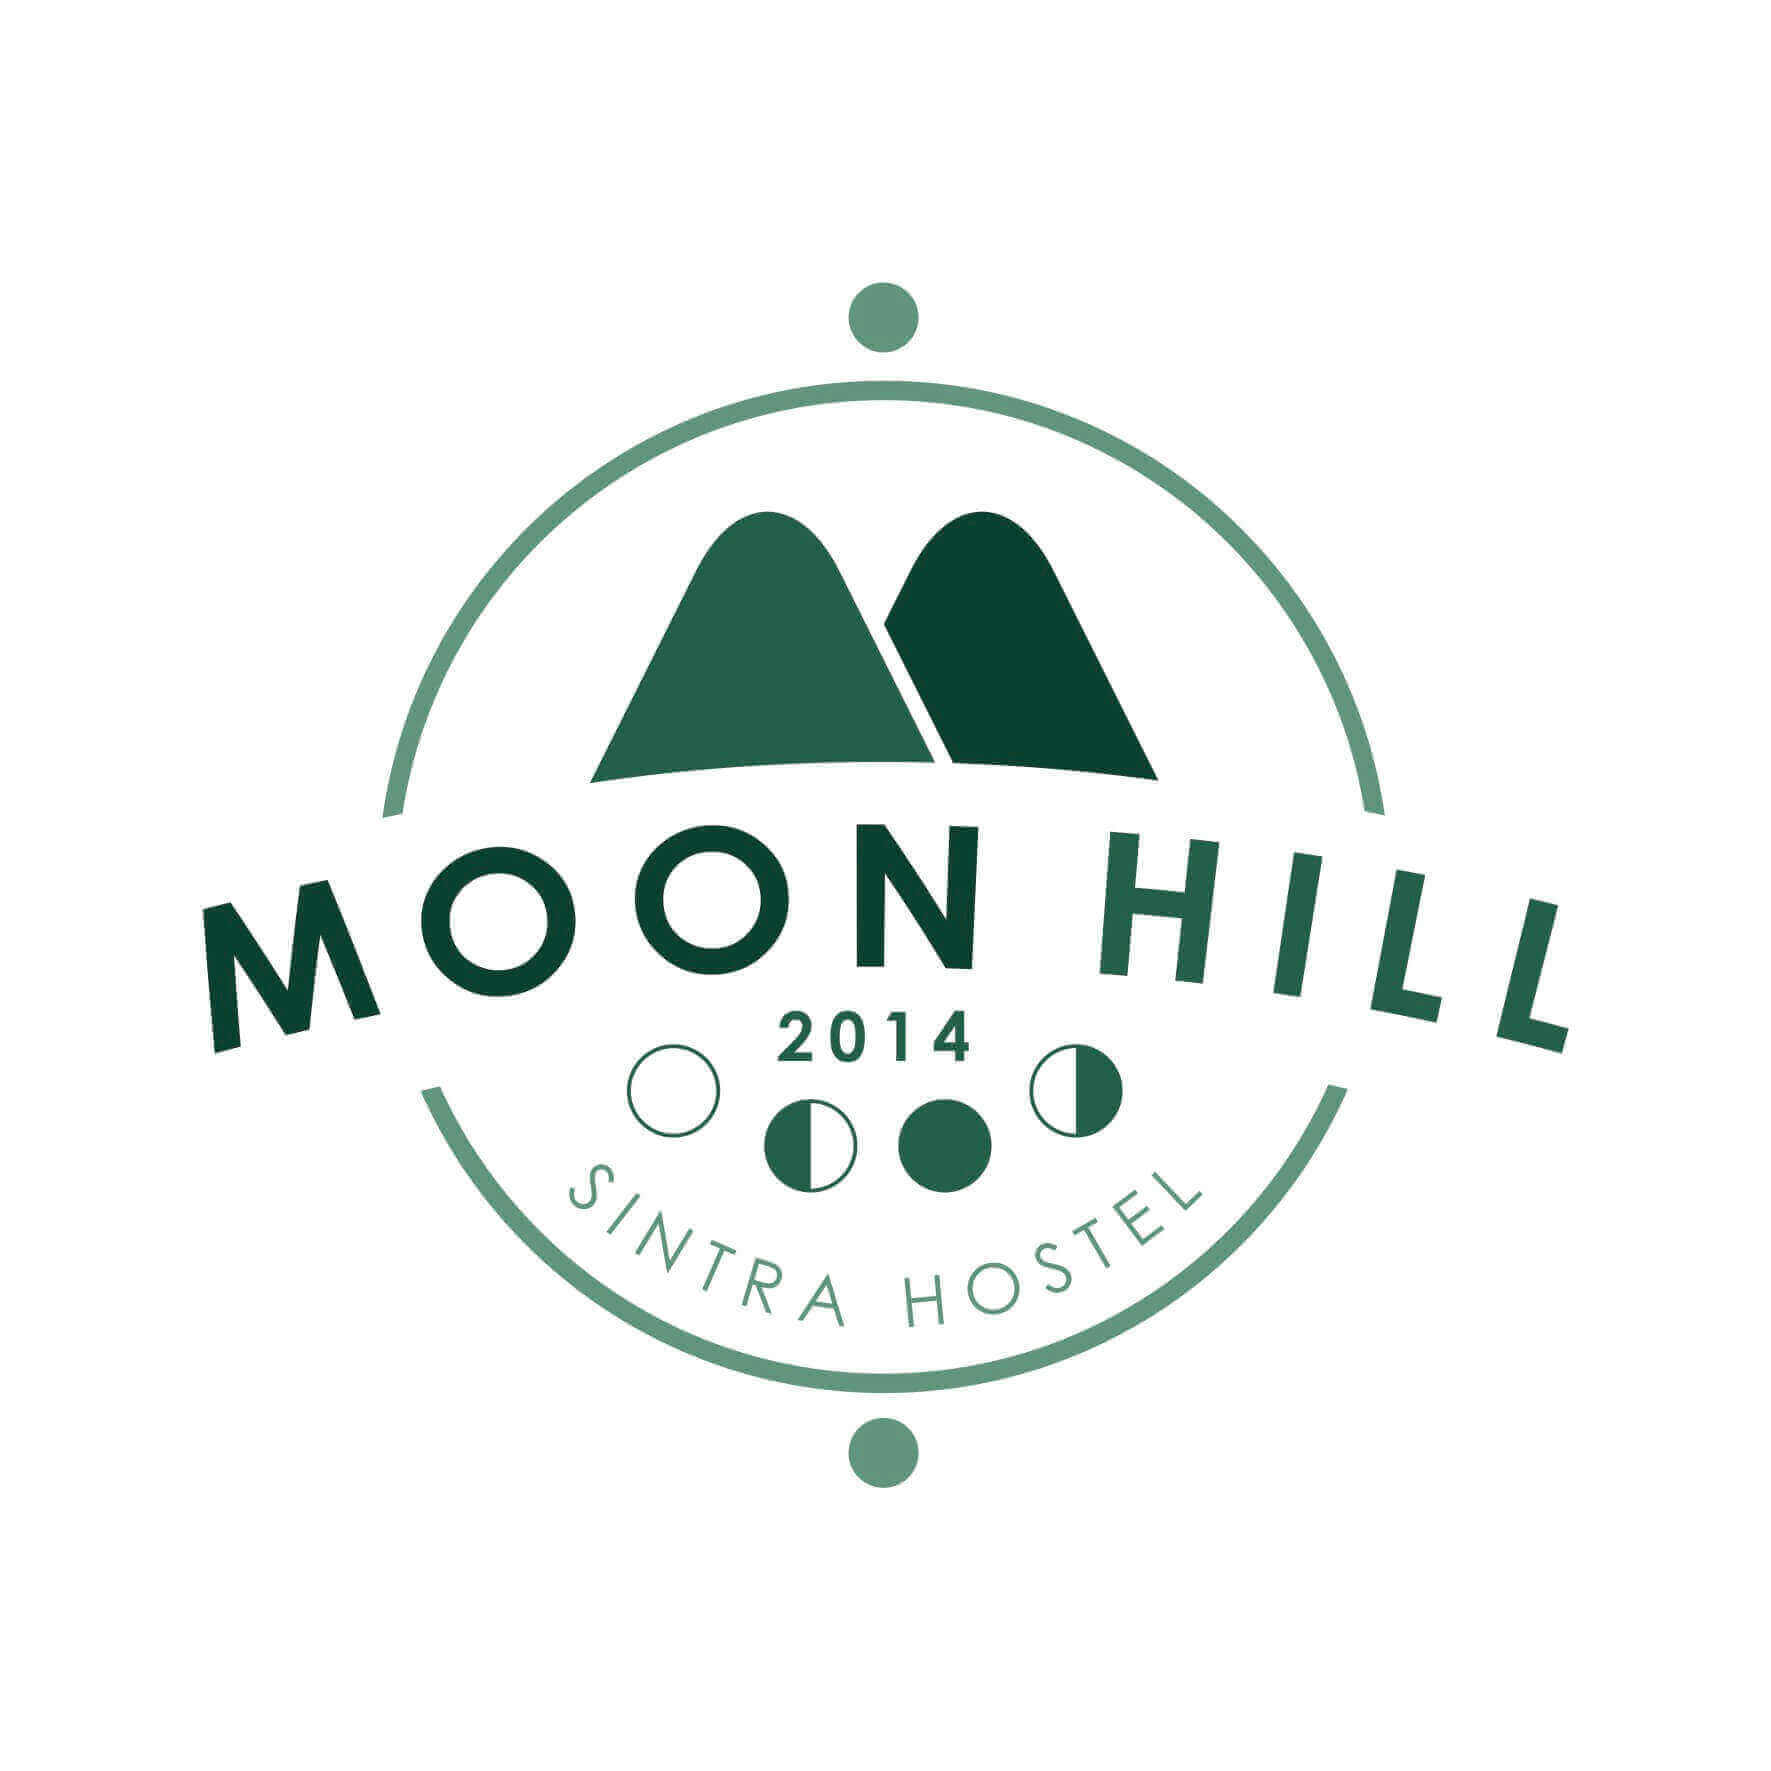 Moon Hill Hostel - Logotipo